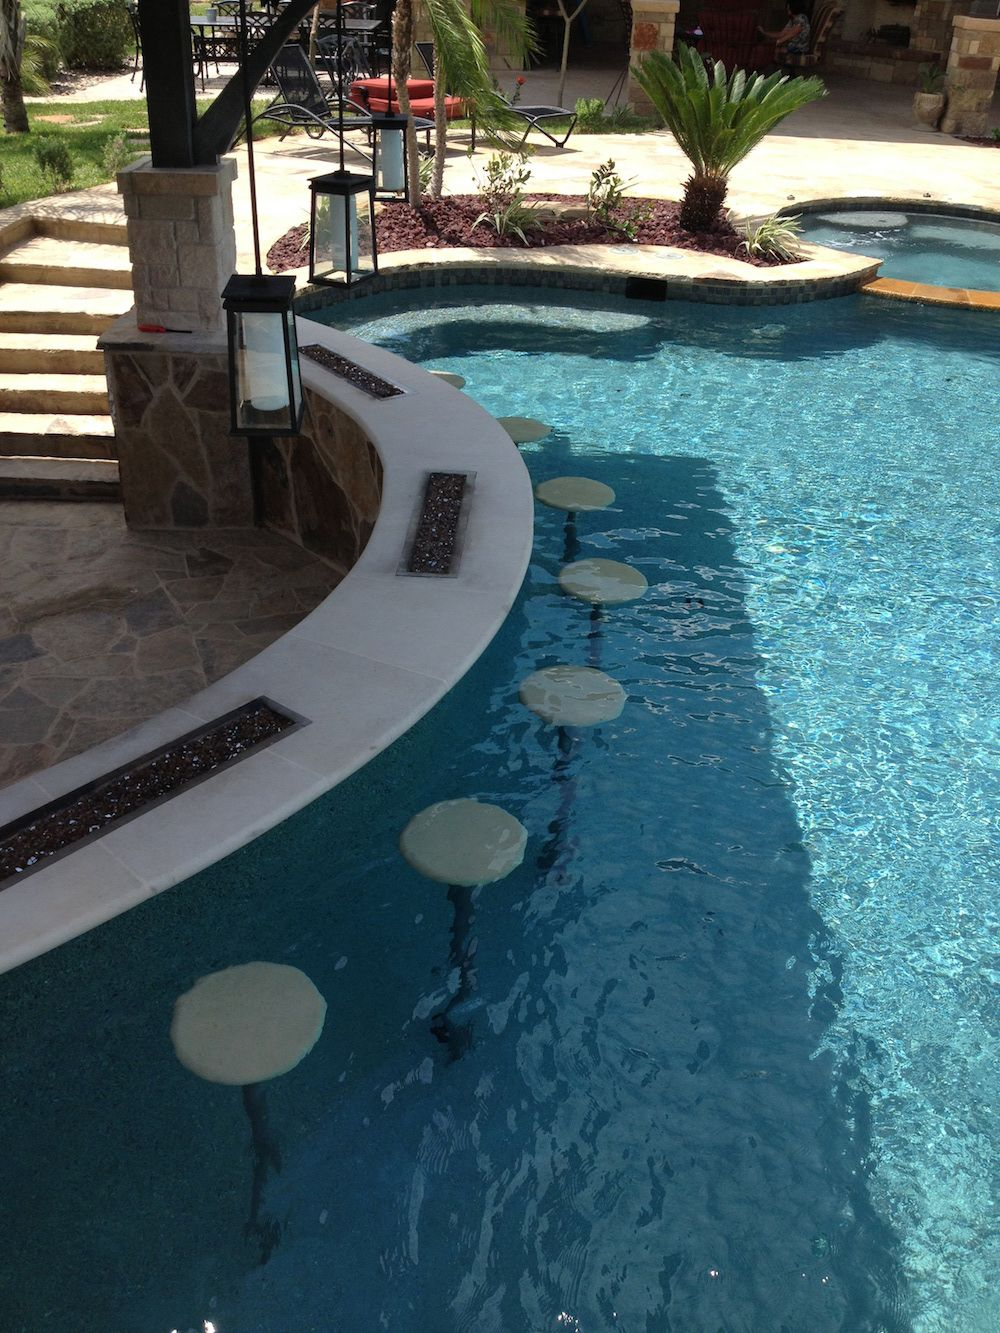 This Is The Life When You Build A Pool Make Sure You Add